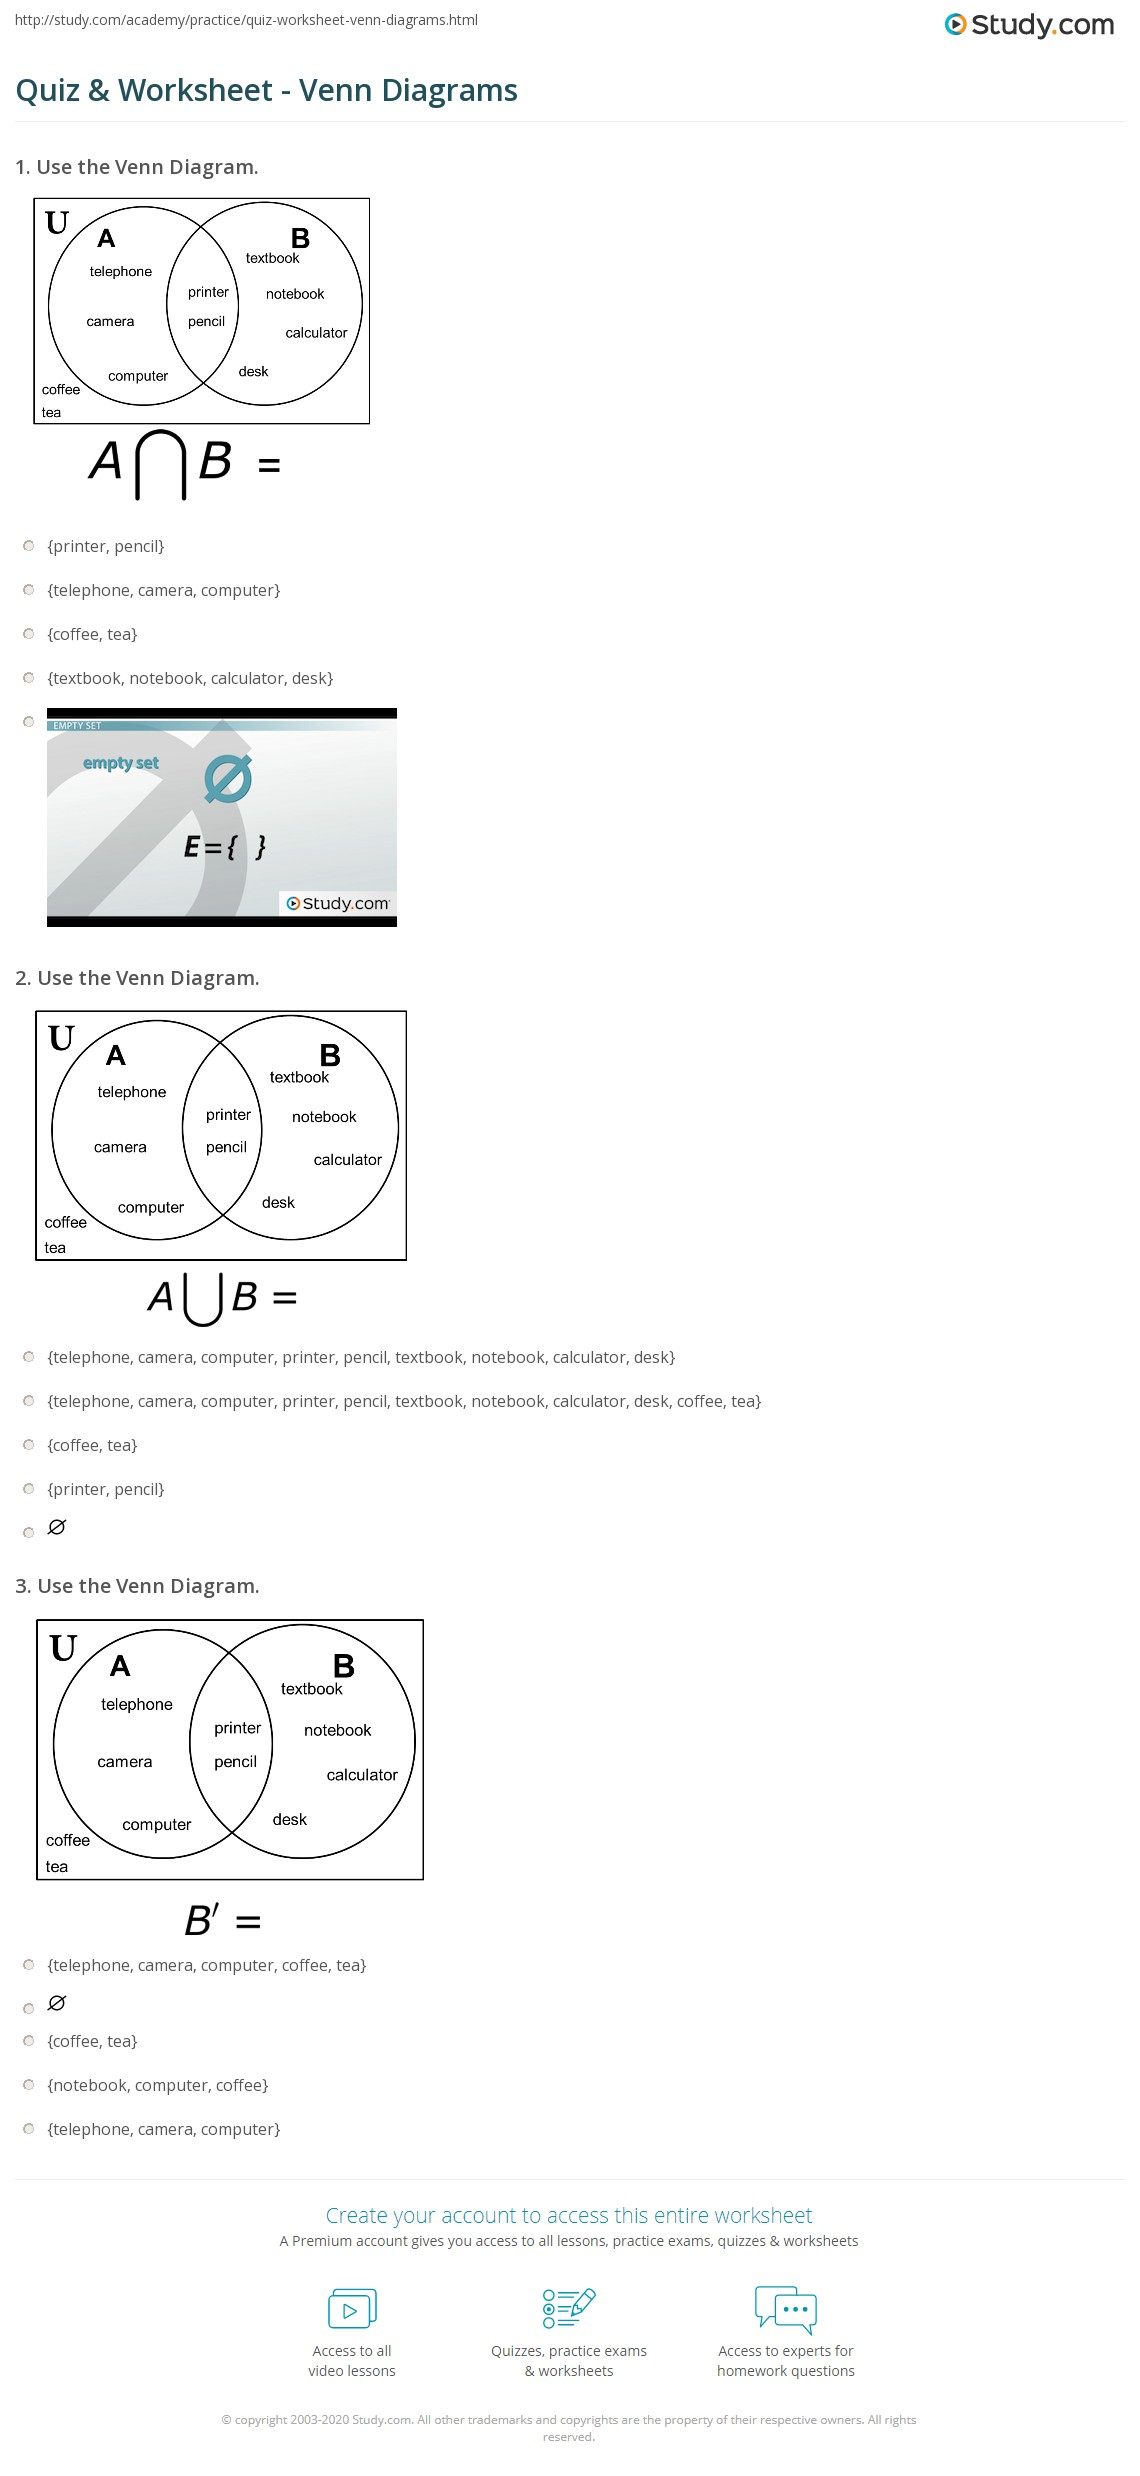 quiz & worksheet - venn diagrams | study